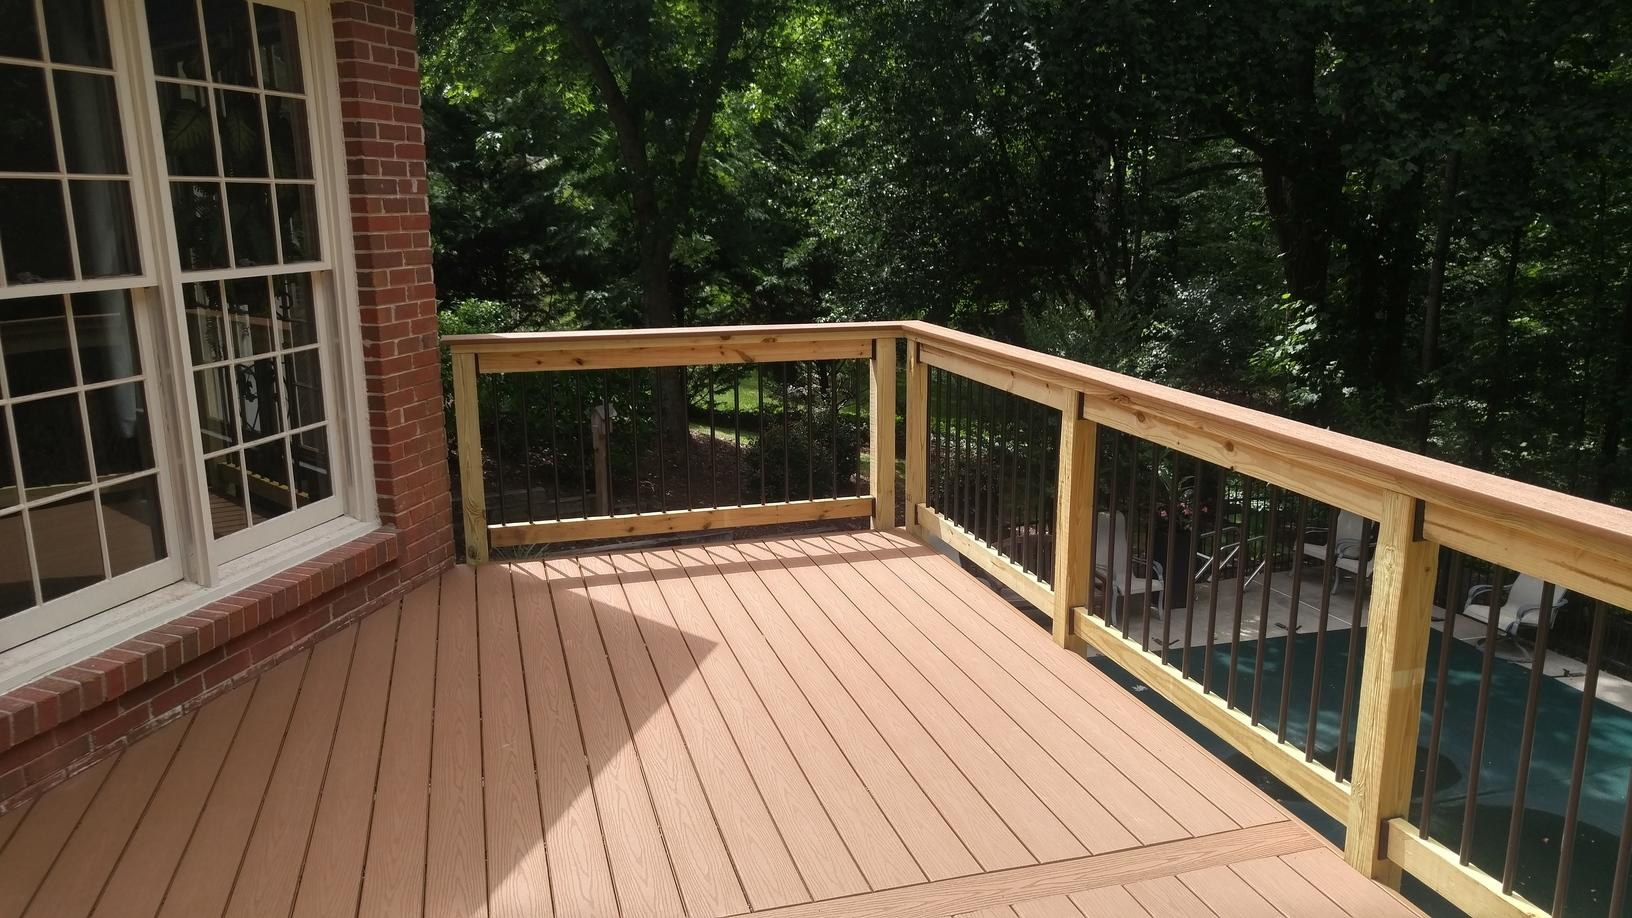 Child Safe Good Life Deck in Roswell, GA - After Photo